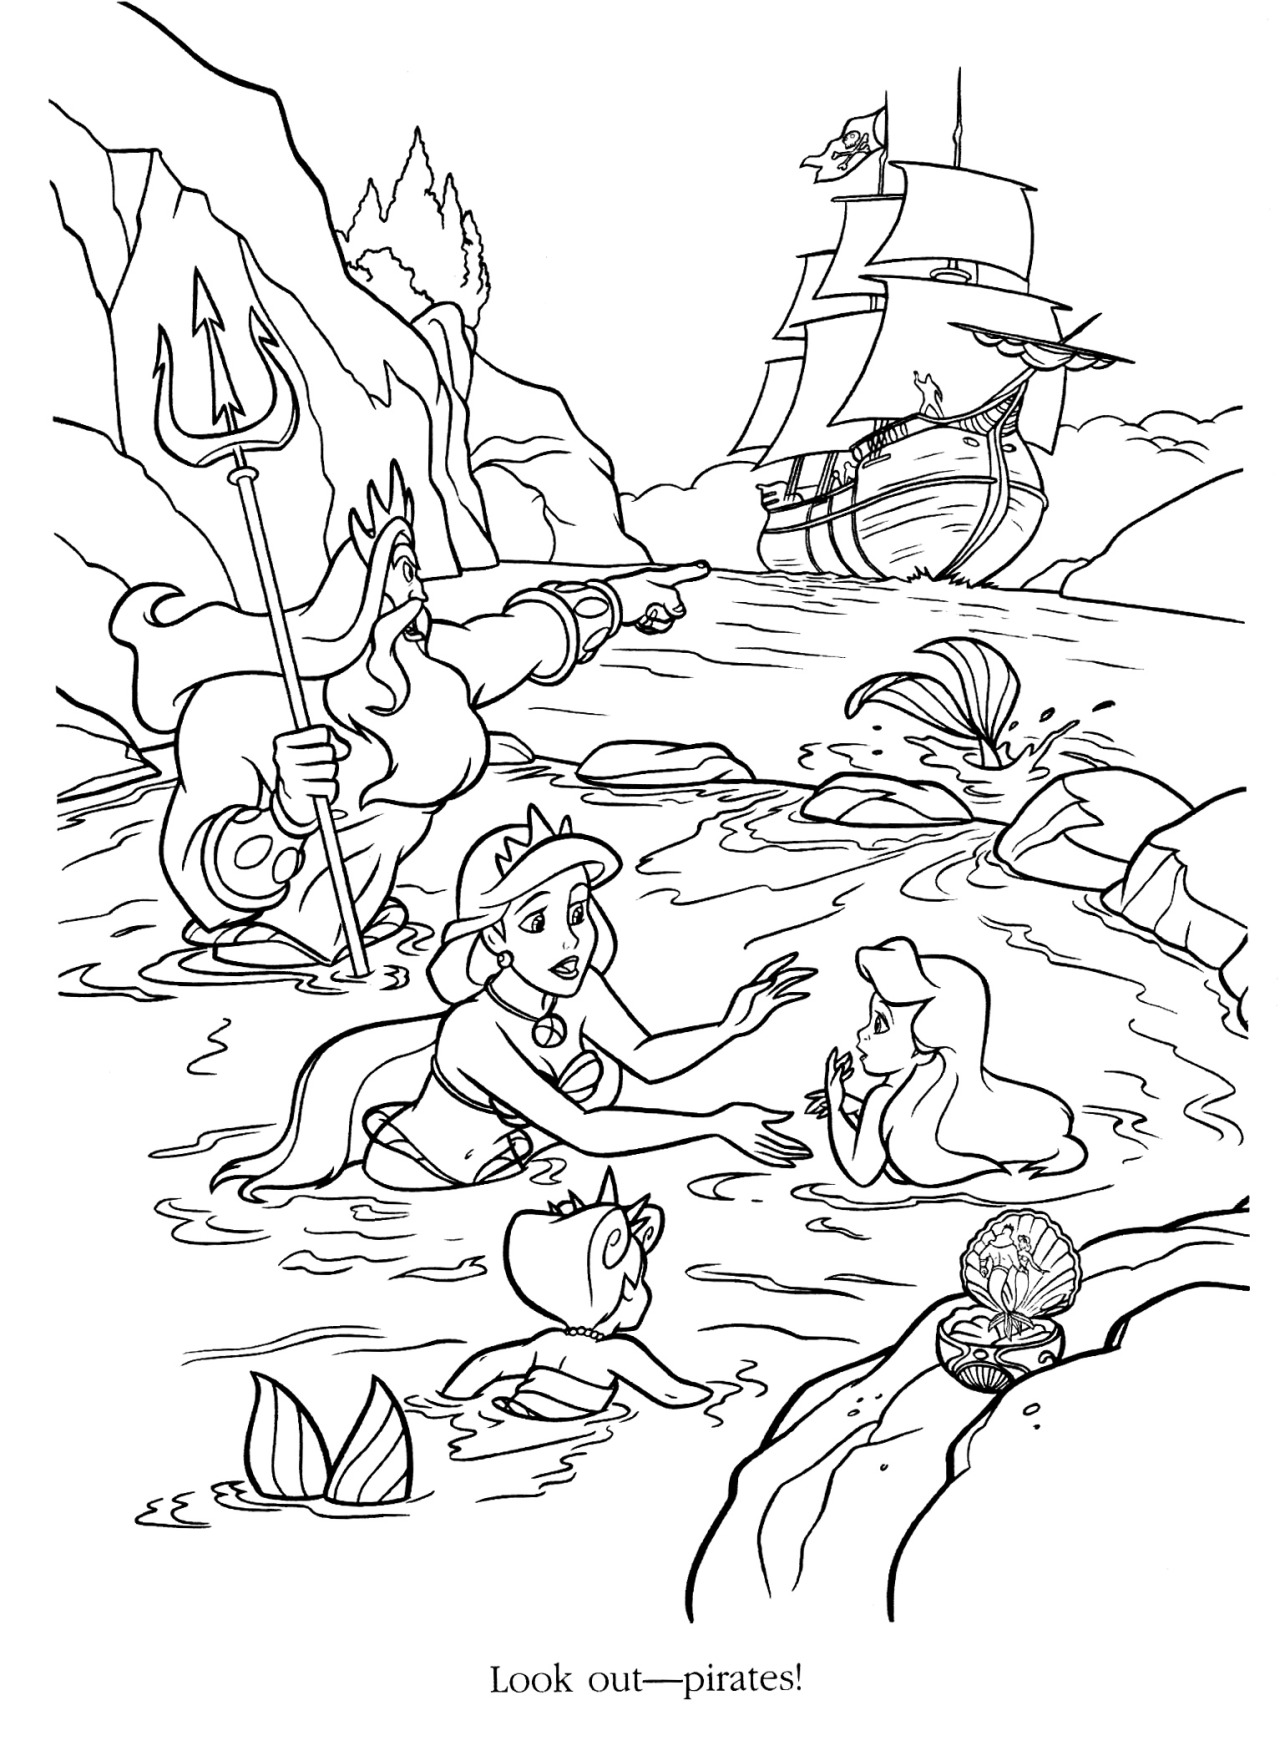 Sports coloring: Lol Dolls Little Sisters Coloring Pages ... | 1741x1280